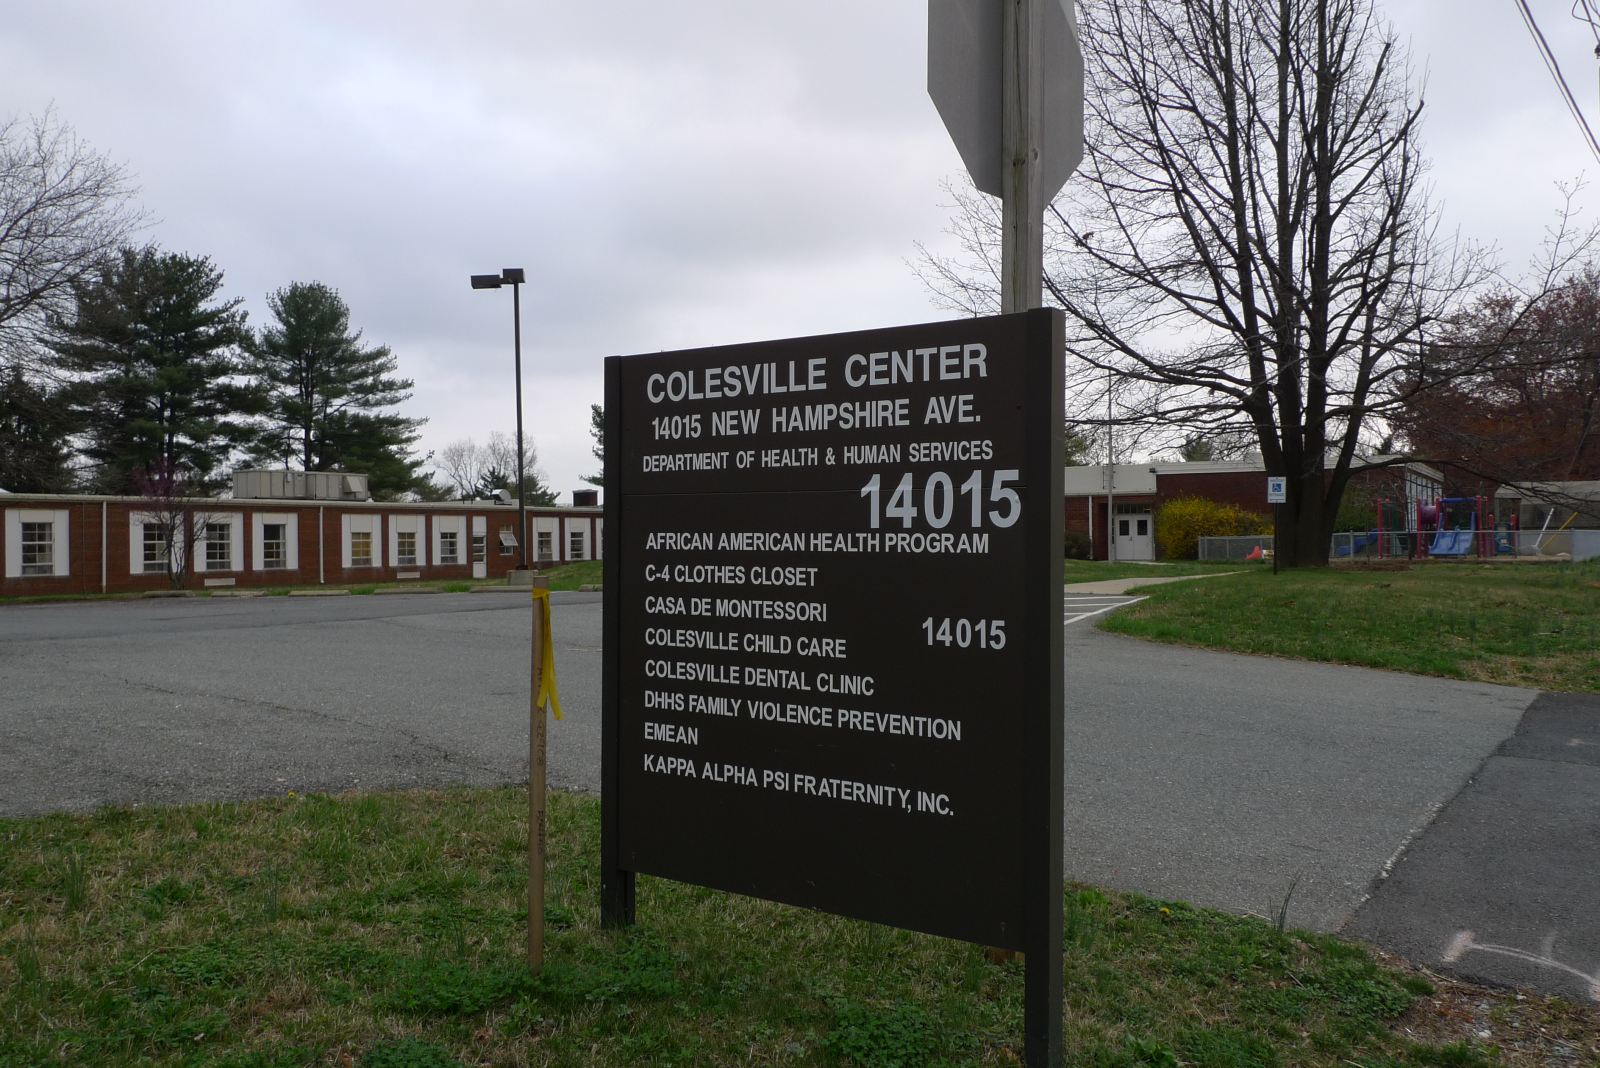 Colesville Dental Clinic - Reduced Cost Dental Care for Low Income Adults